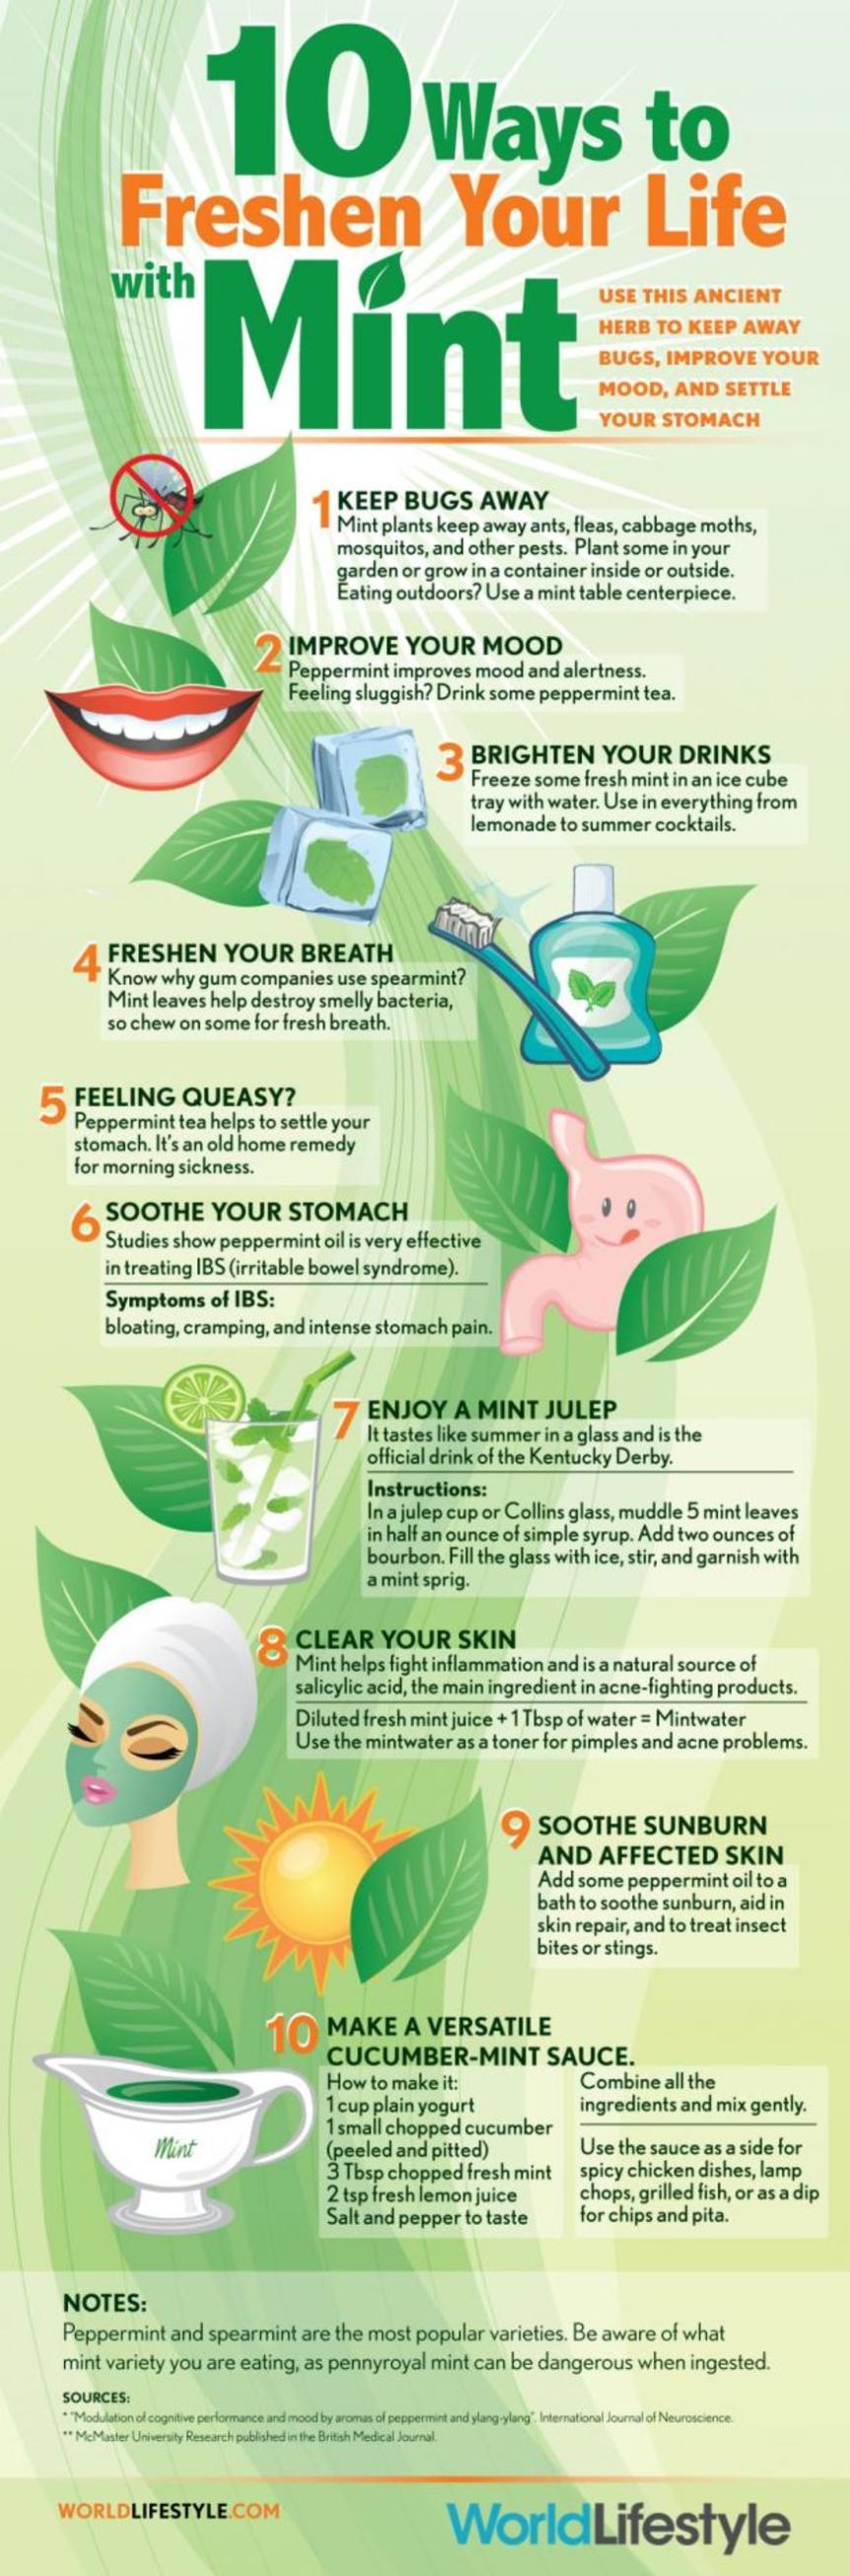 10-ways-to-freshen-your-life-with-mint-01052014